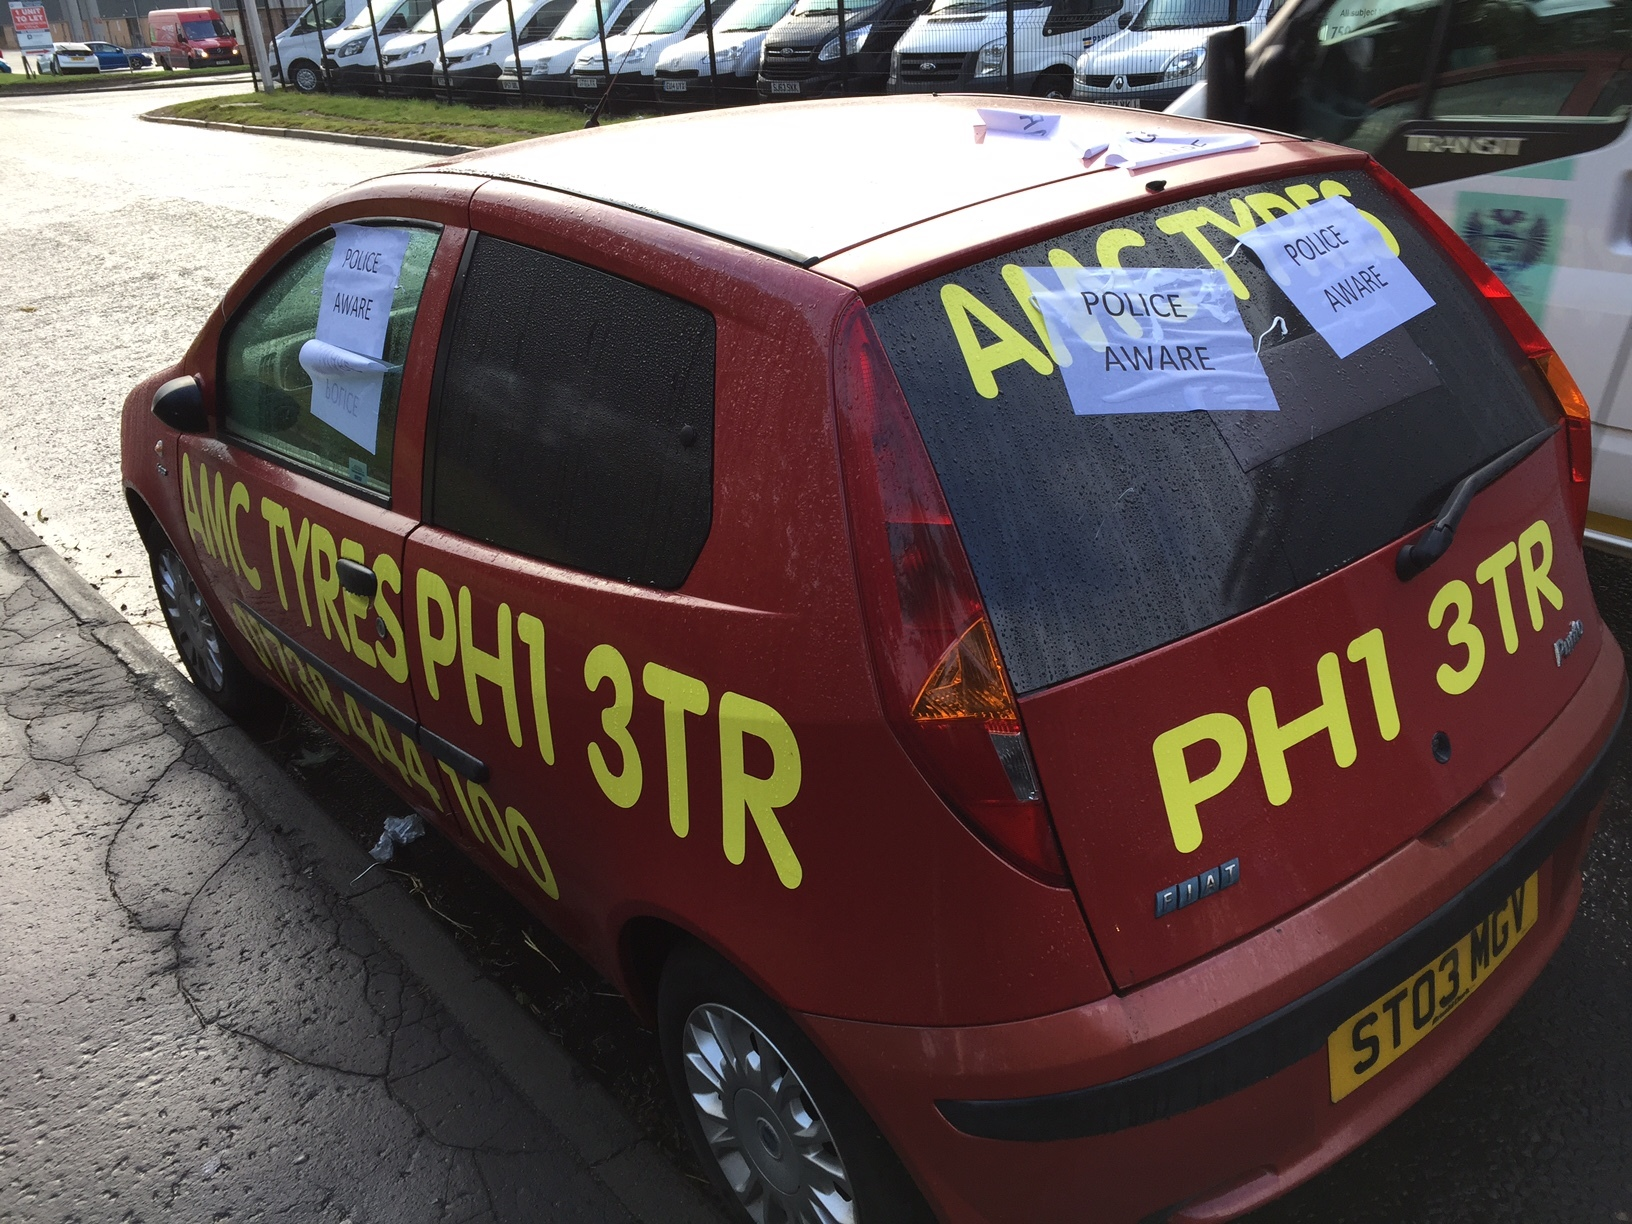 The Fiat Punto has been vandalised several times.